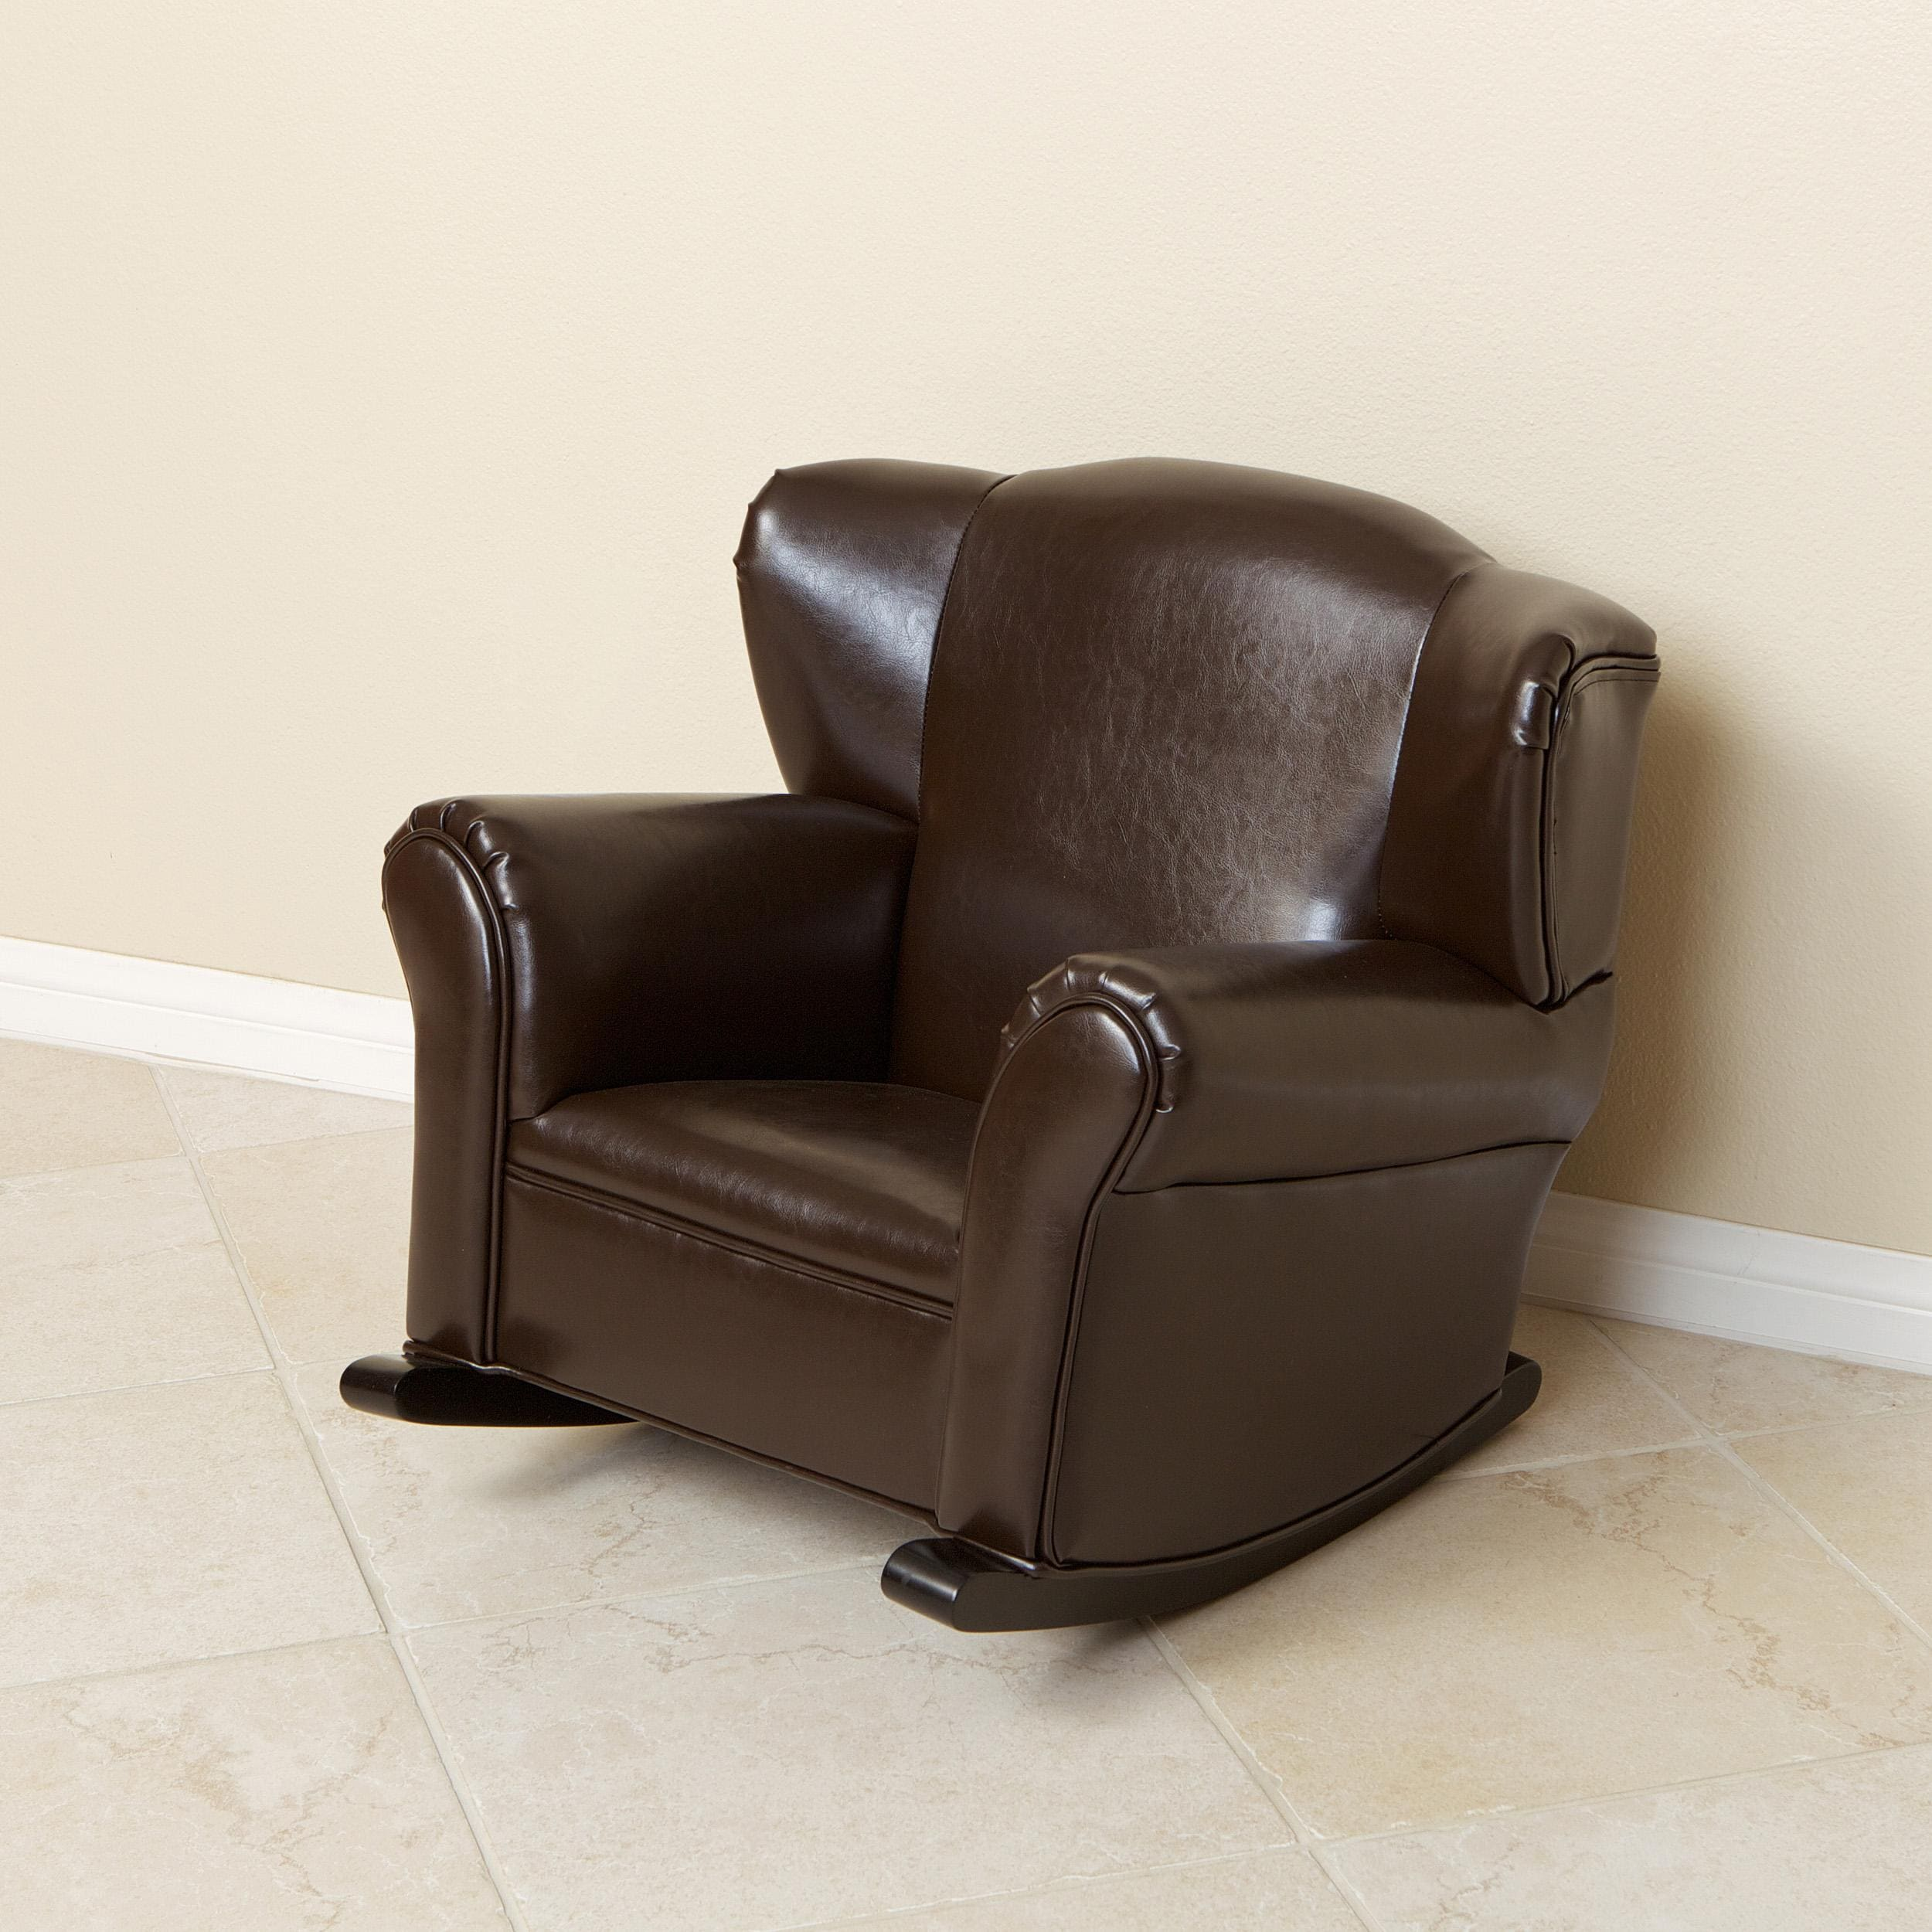 Upholstered Children's Chairs Bonded Leather Brown Kids Rocking Chair